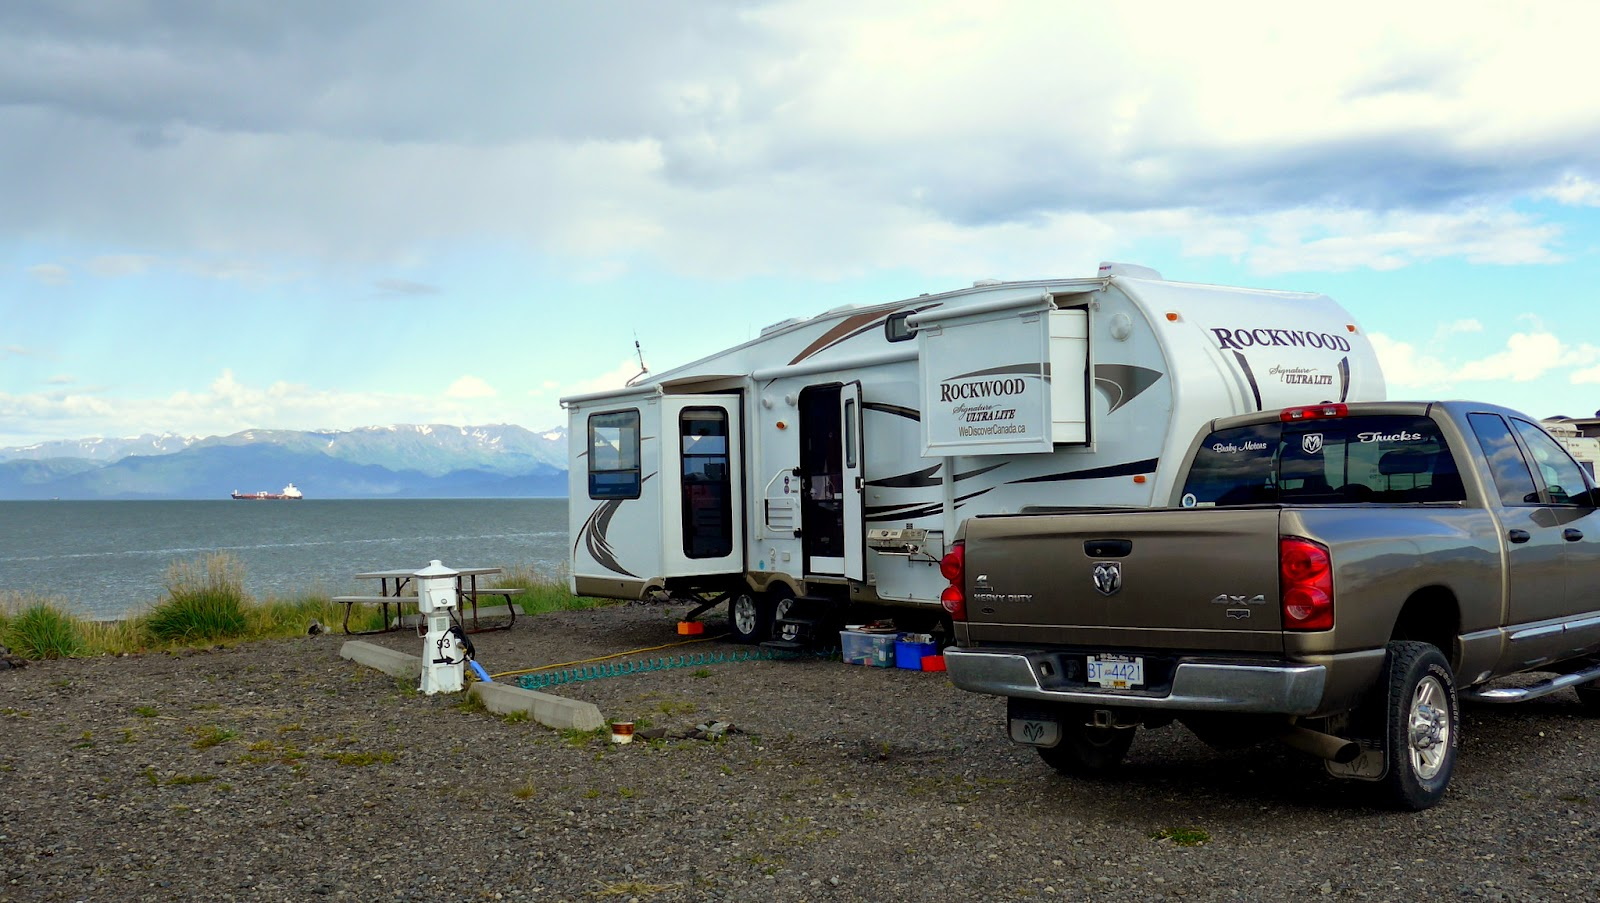 Our Campsite on Homer Spit